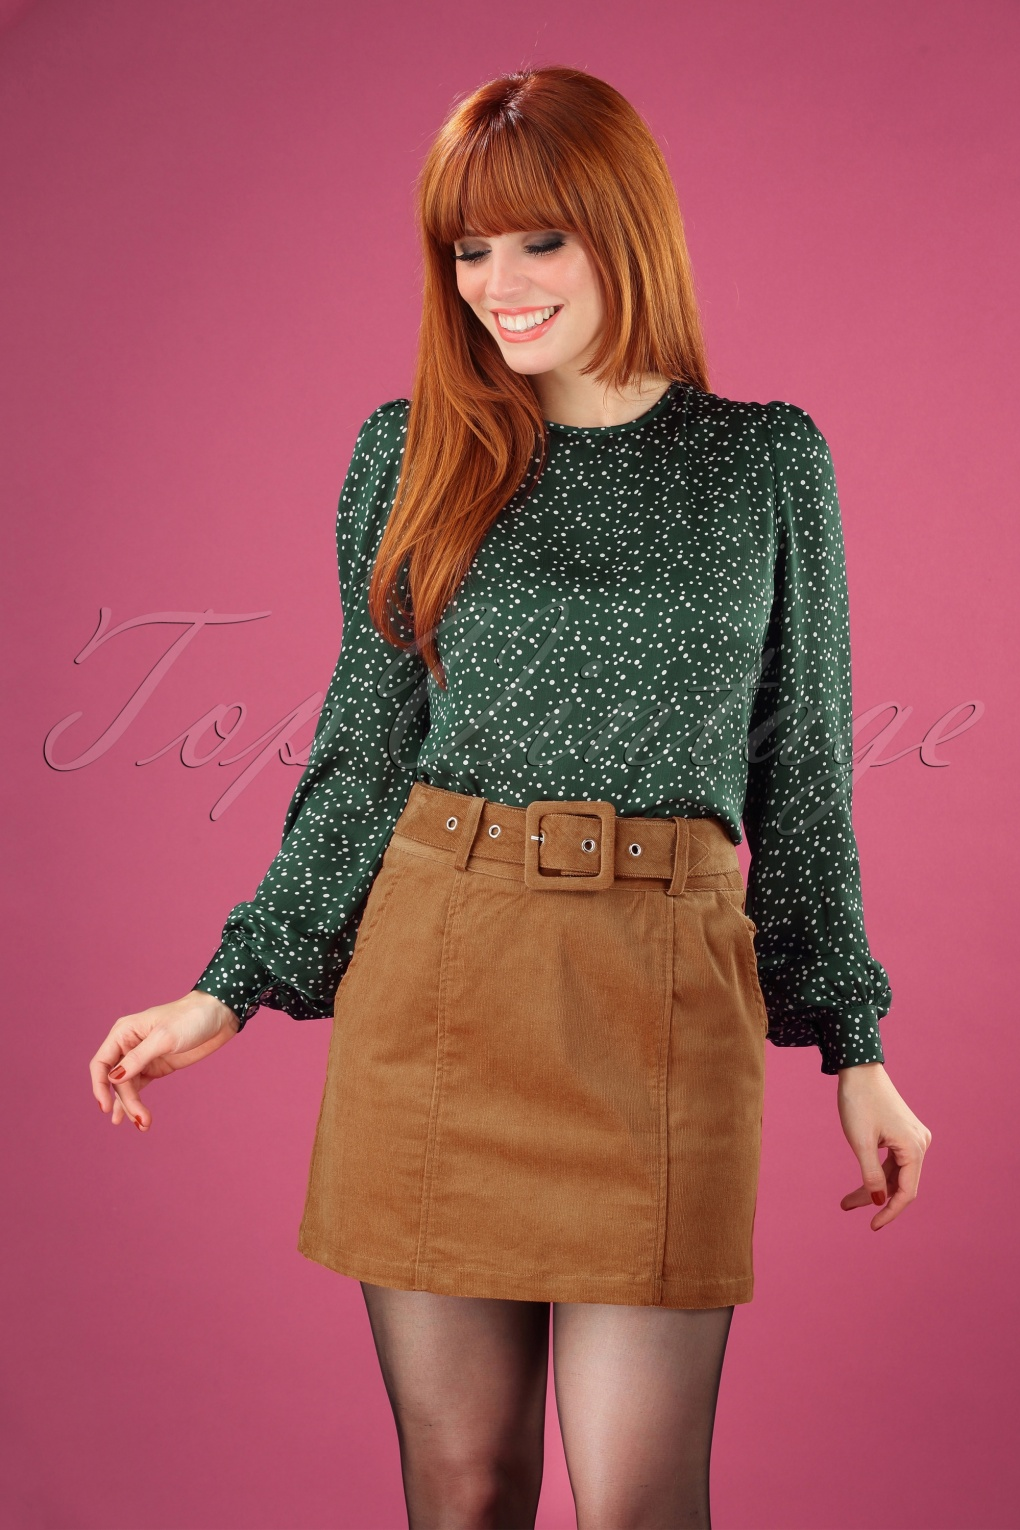 Vintage Inspired Dresses & Clothing UK 60s Amir Cord Mini Skirt in Tan £57.89 AT vintagedancer.com